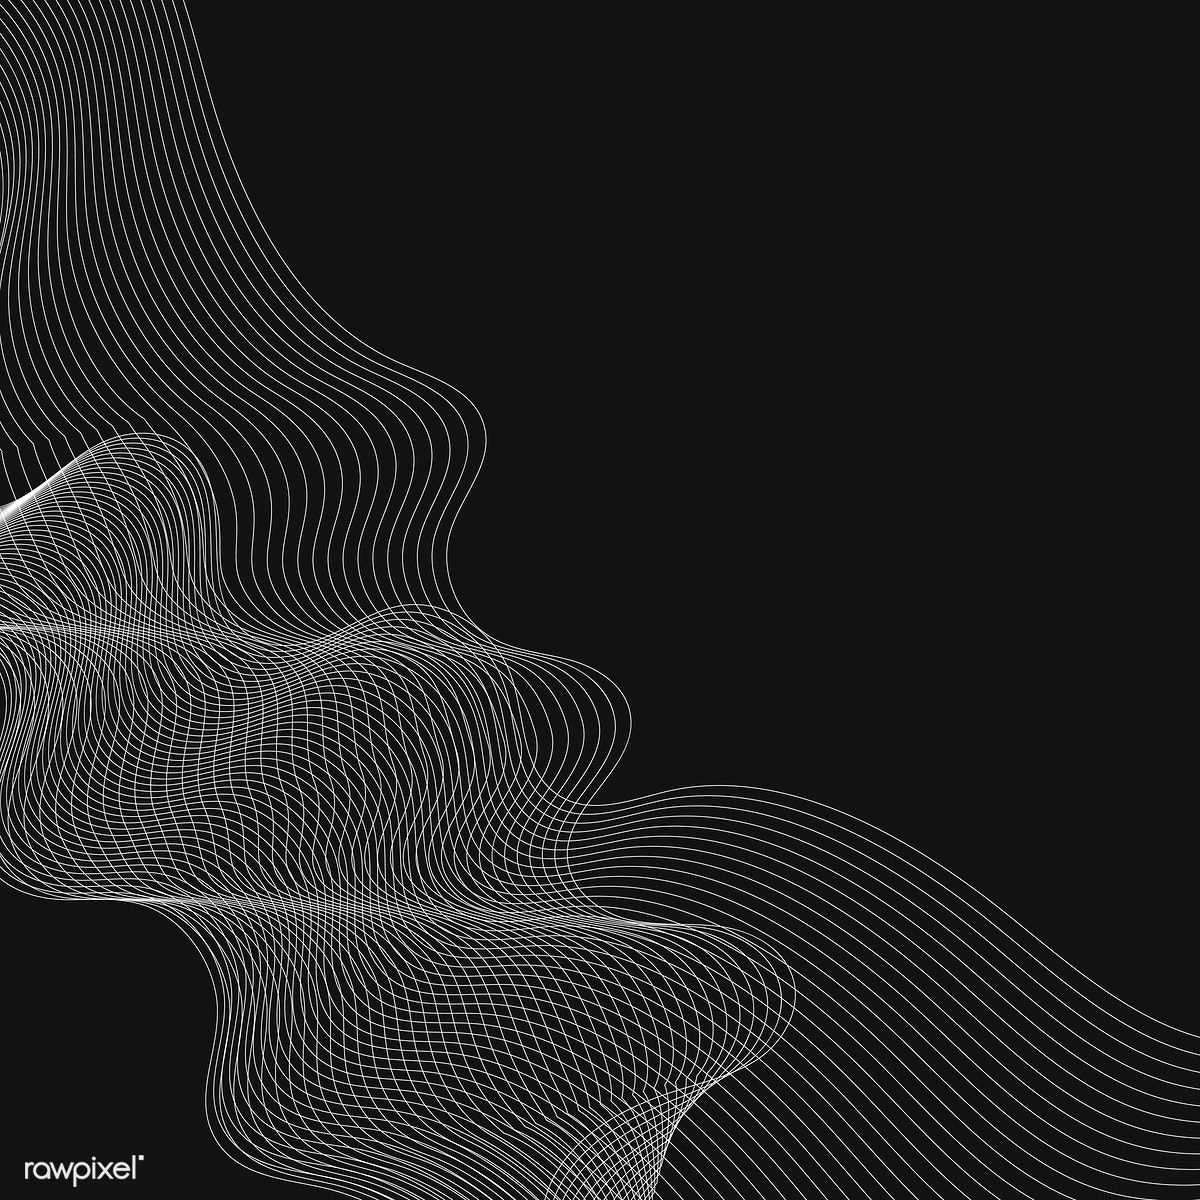 White moiré wave on black background free image by